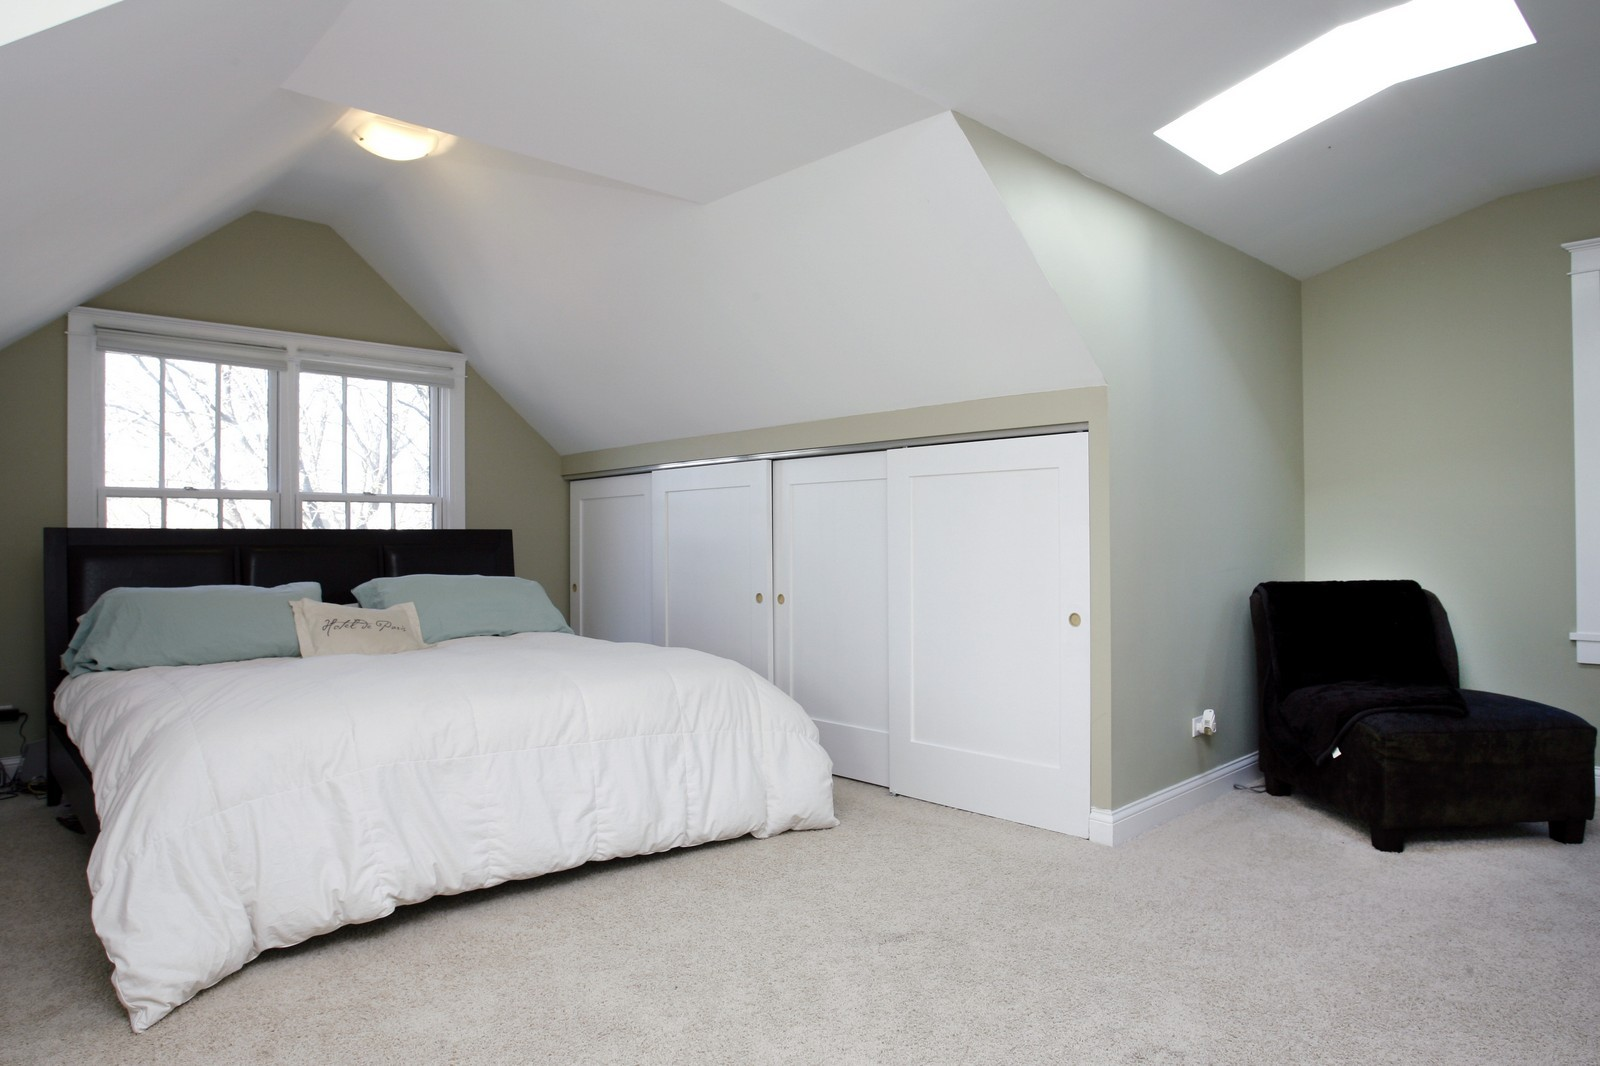 Real Estate Photography - 1457 W Pensacola, Chicago, IL, 60613 - Master Bedroom